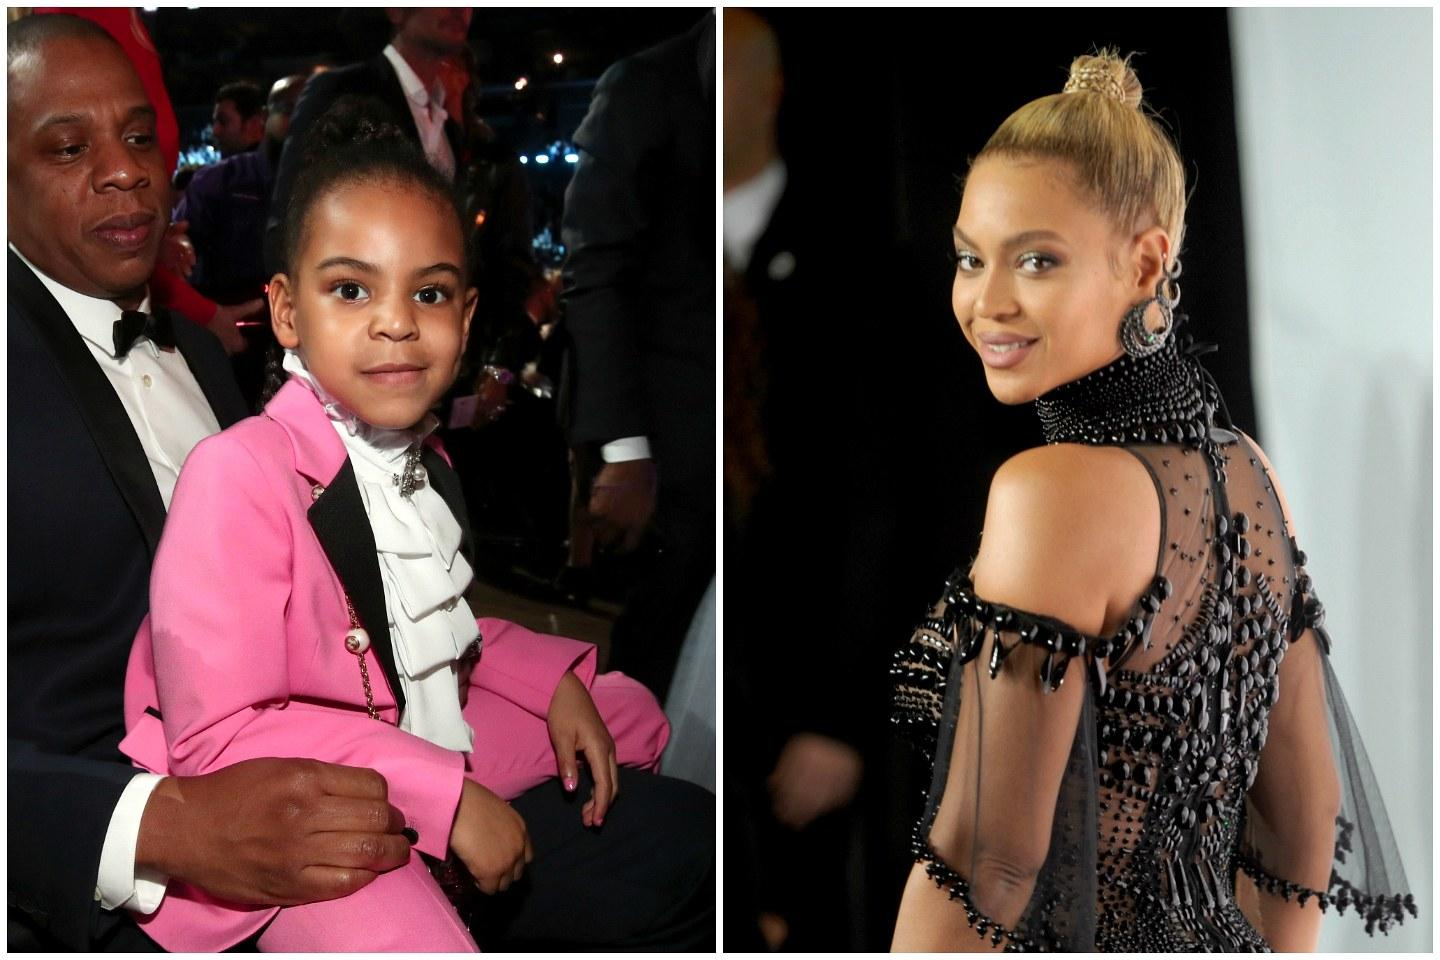 Beyonce Shocked By How Similar She And Daughter Blue Ivy Look In Side-By-Side Pictures!